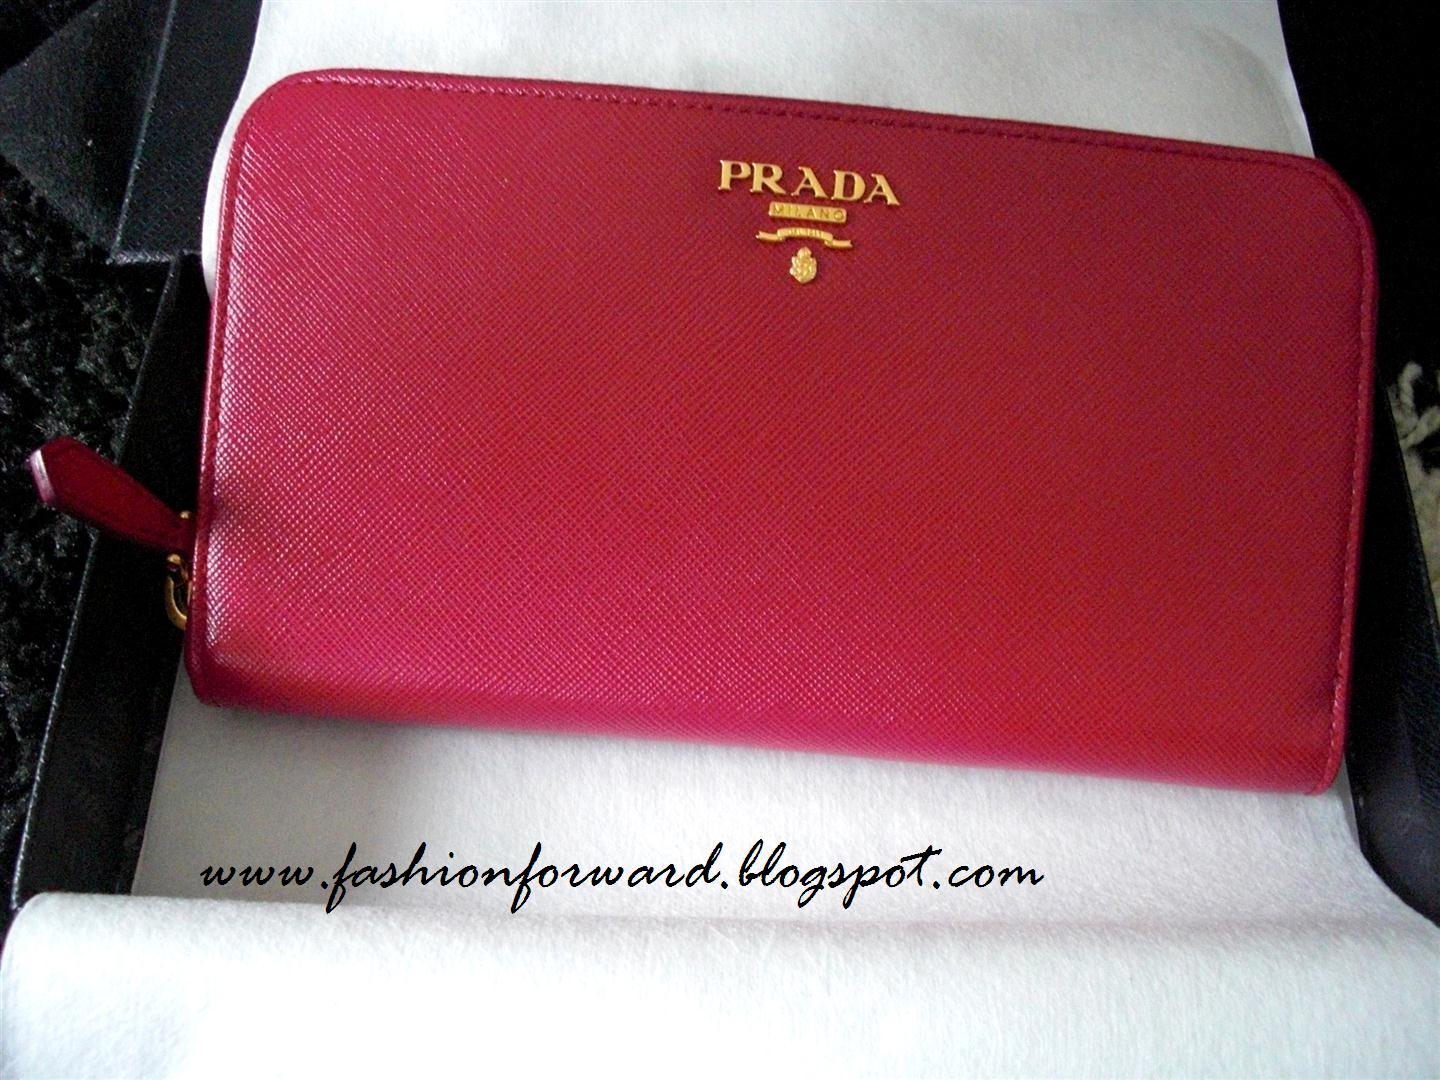 Prada Saffiano leather wallet in hibiscus